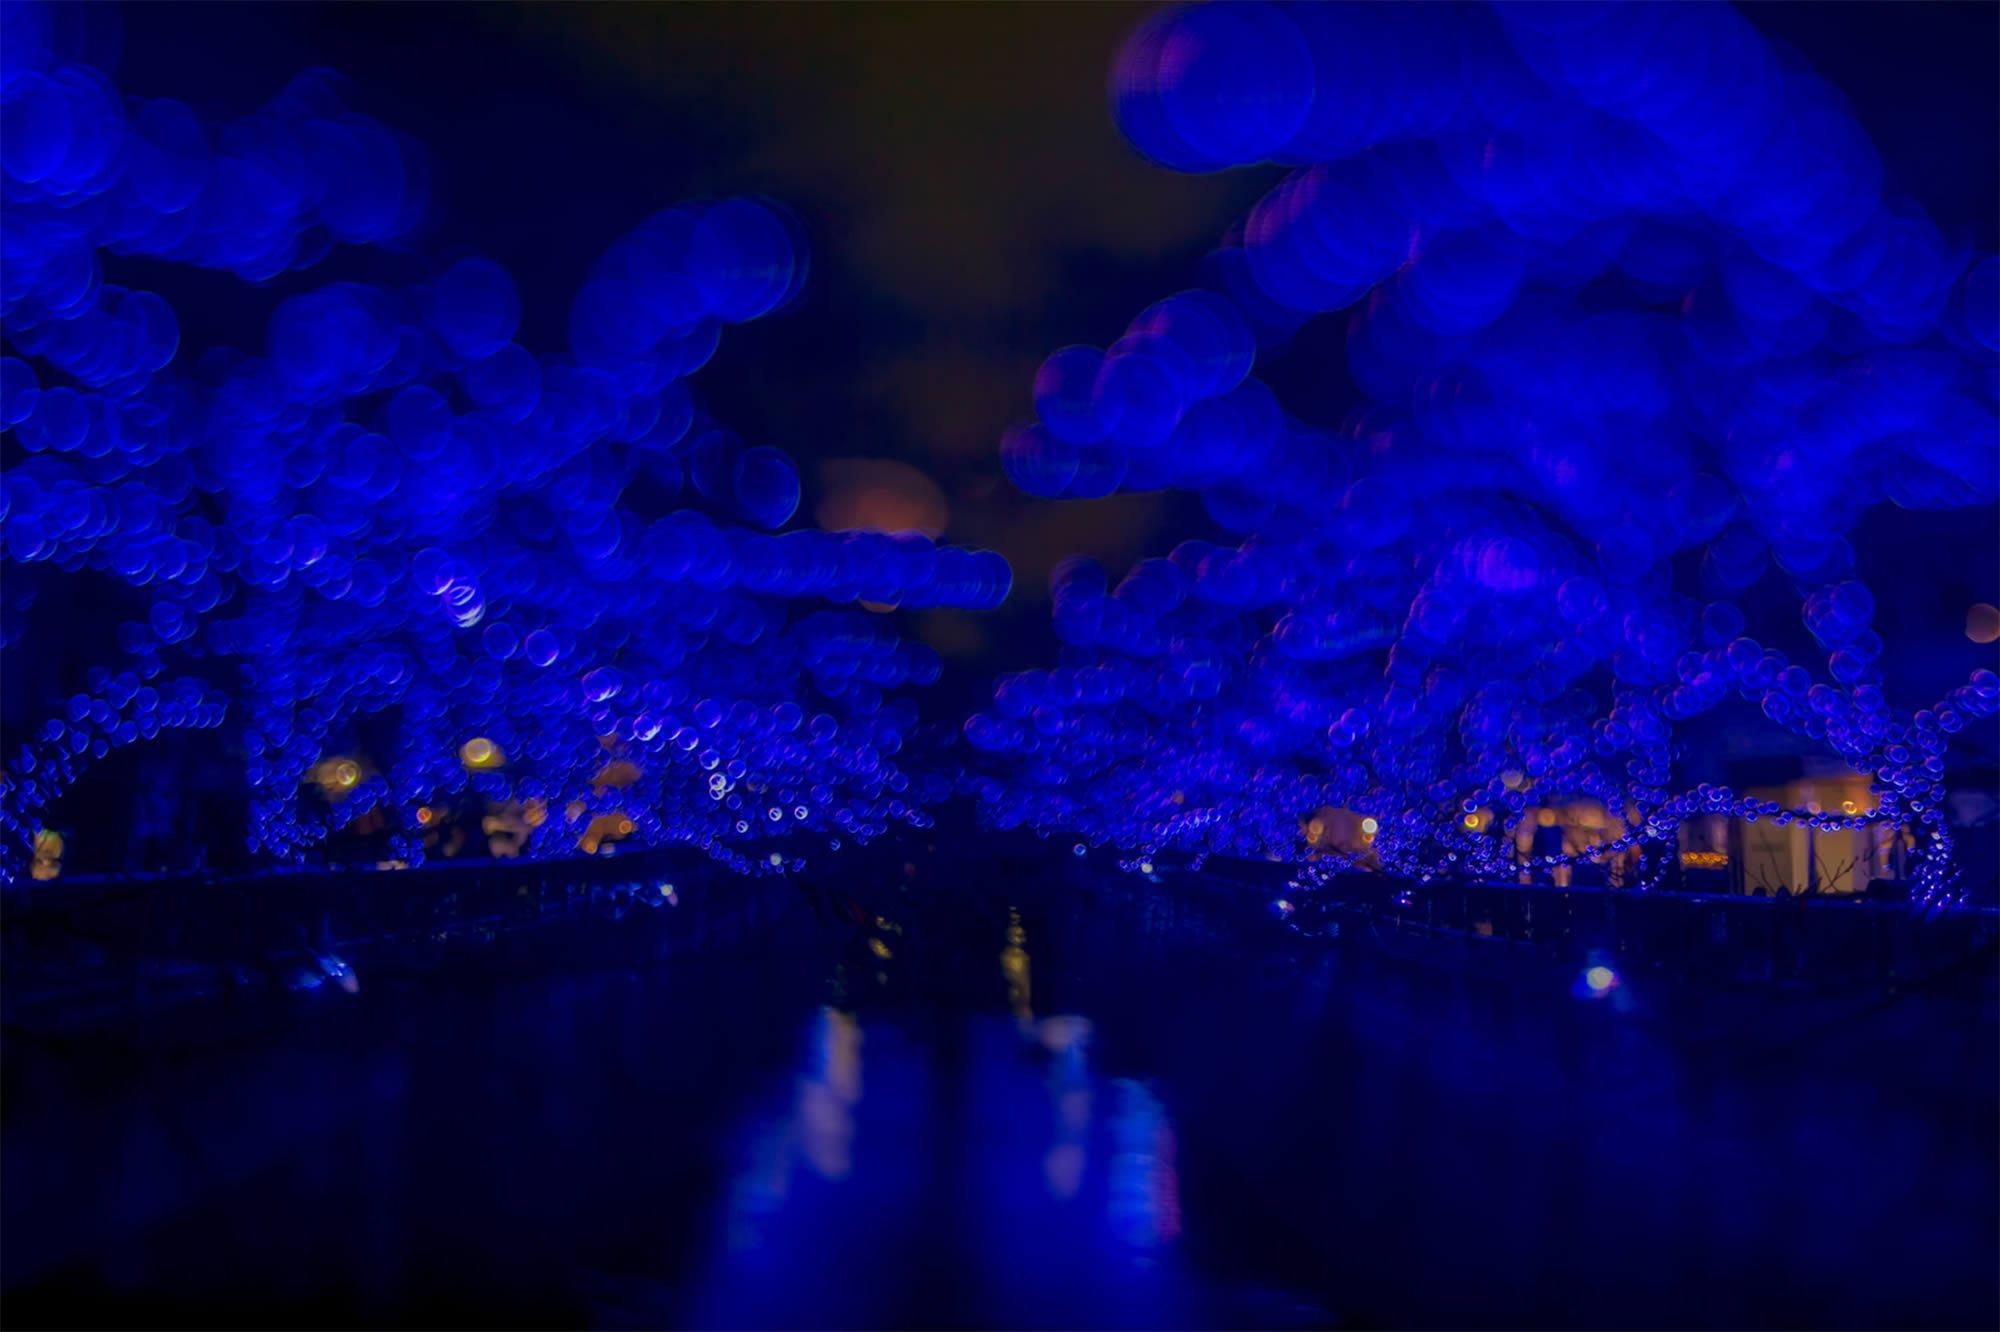 royal blue trees, bokeh photography, japan, by Takashi Kitajima